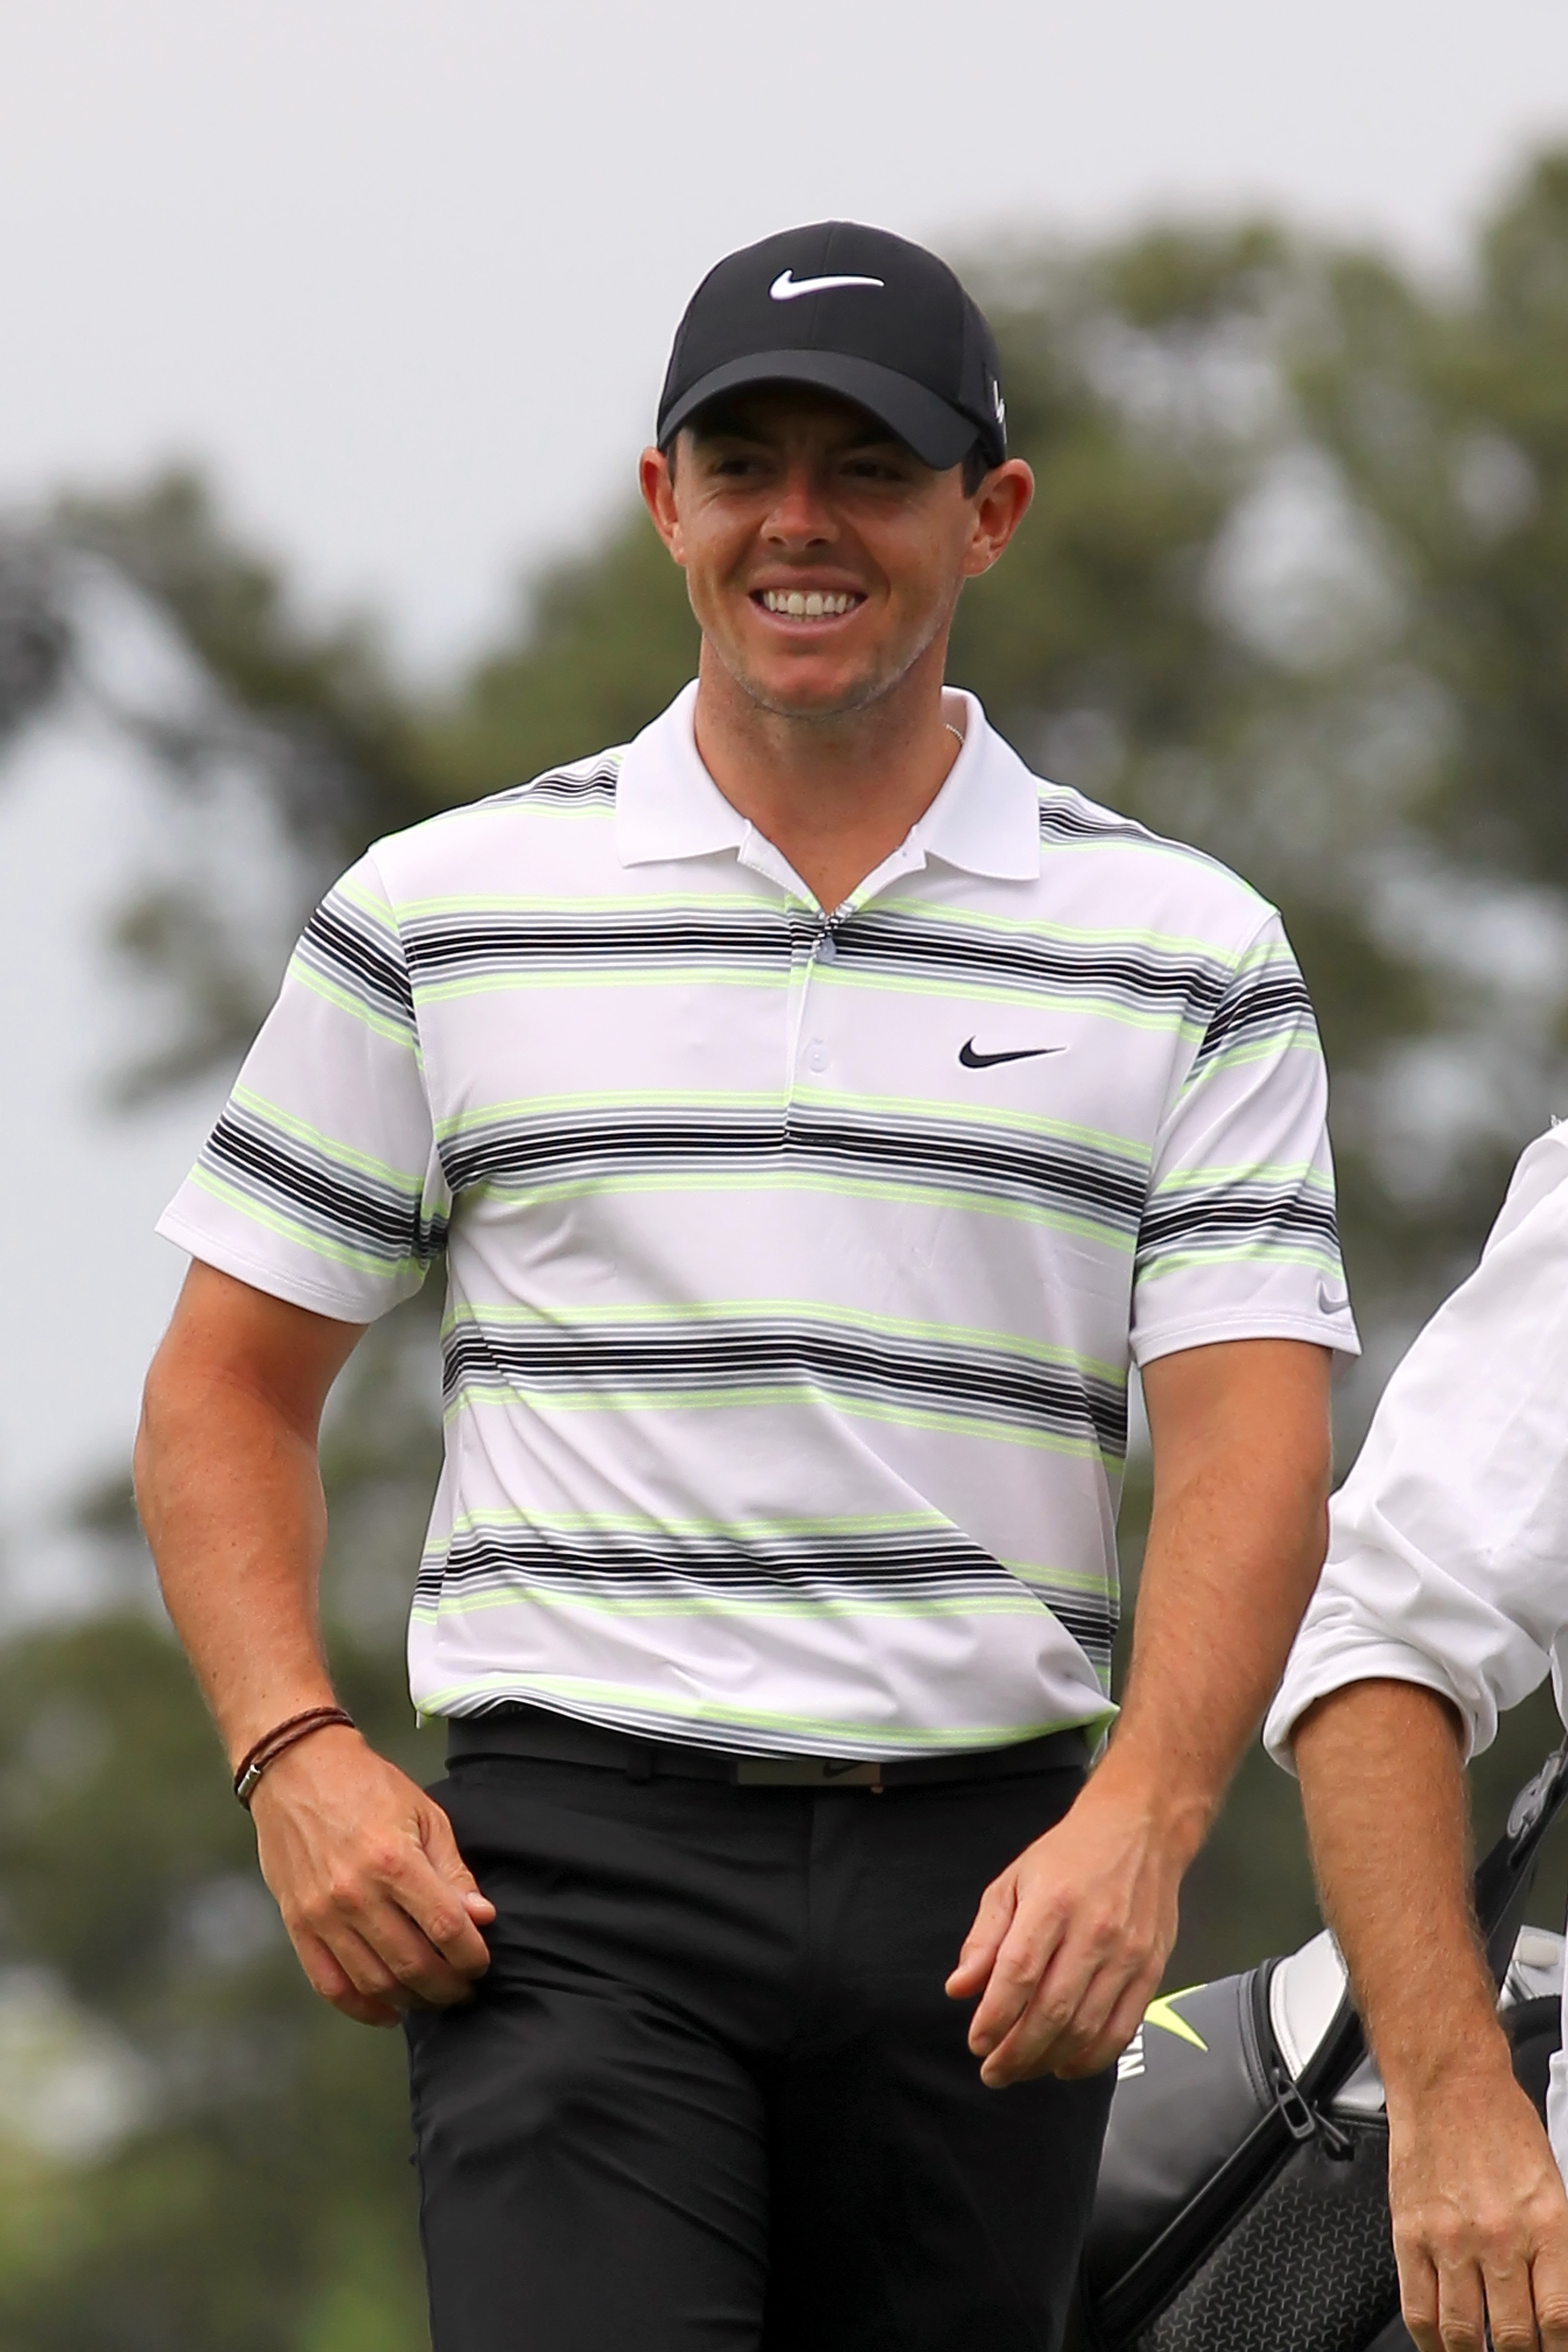 Rory McIlroy will face Billy Horschel, Jason Dufner and Brandt Snedeker in the Match Play's round-robin matches.